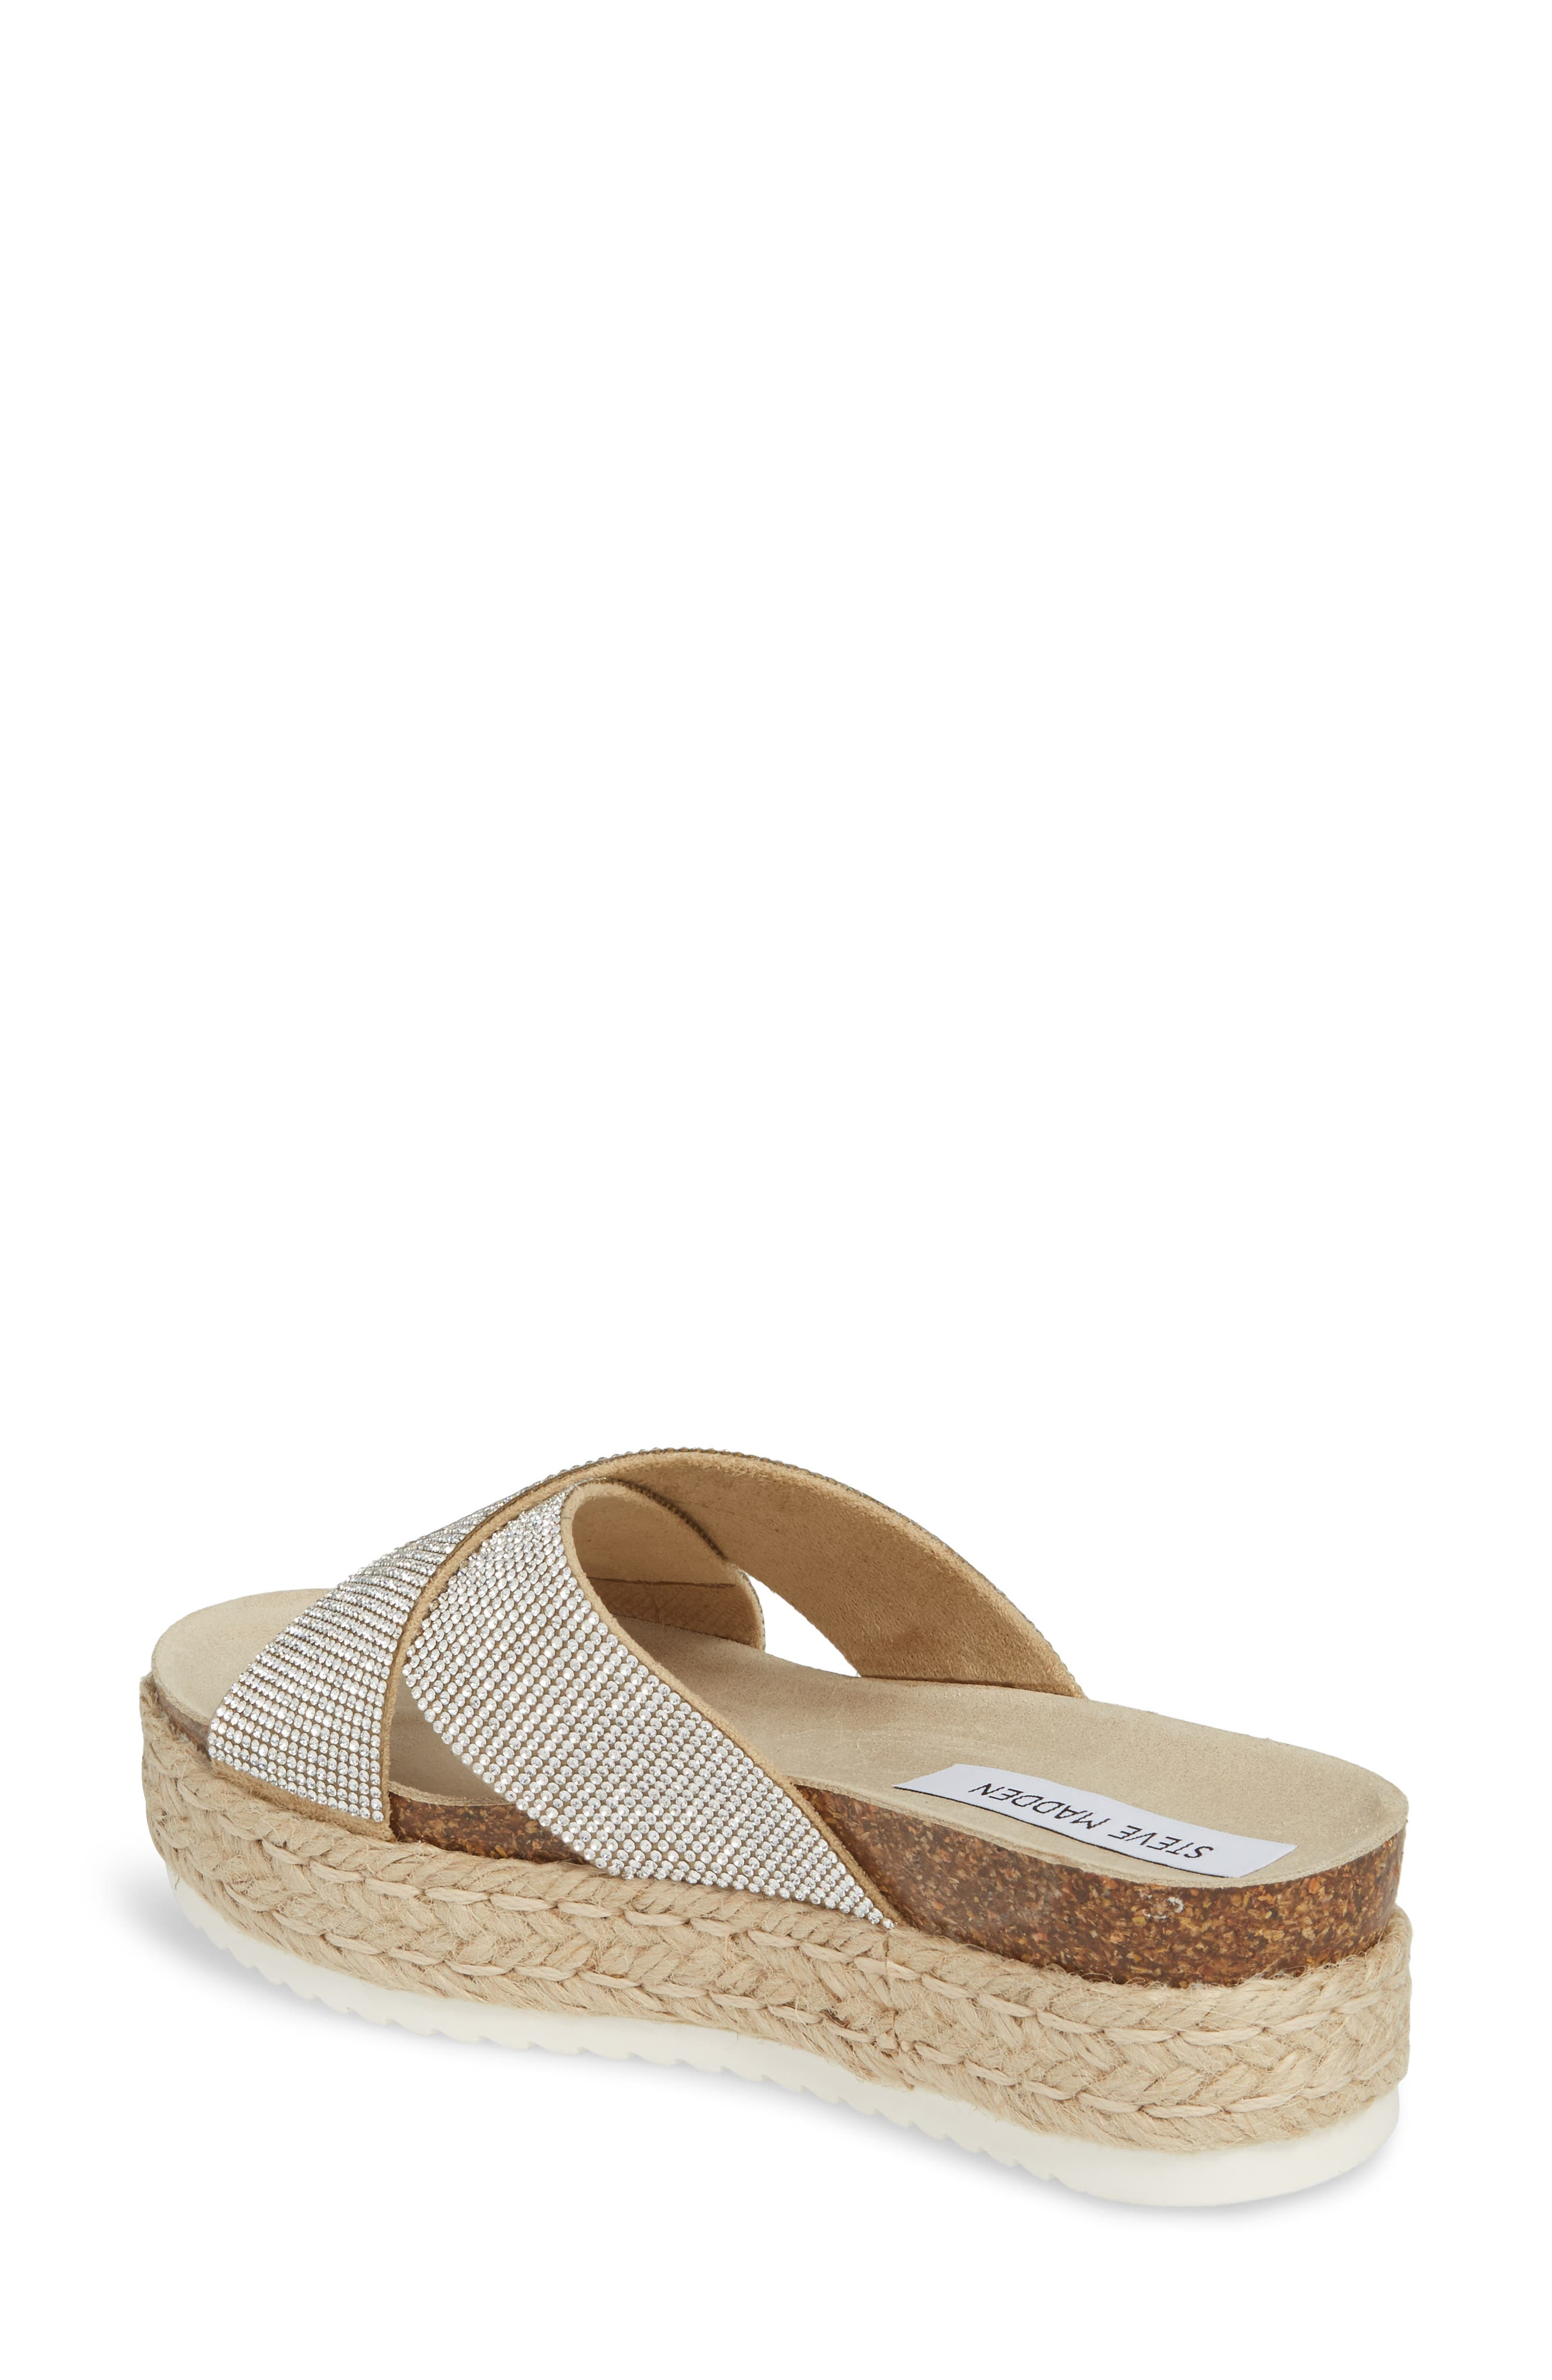 Arran-R Platform Espadrille Sandal,                             Alternate thumbnail 2, color,                             Rhinestone